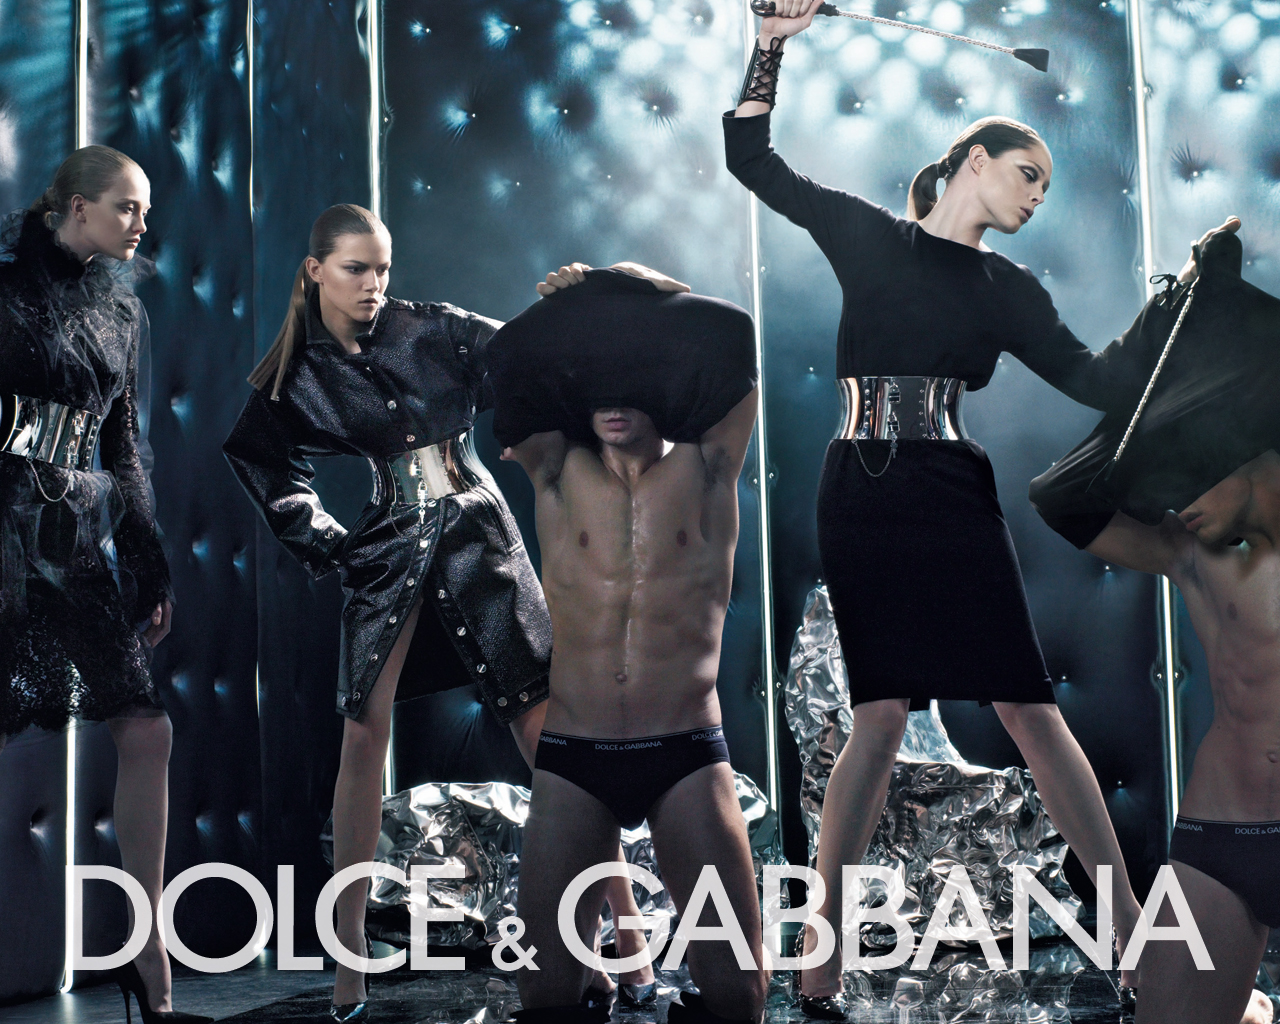 http://images.fanpop.com/images/image_uploads/Dolce---Gabbana---wallpaper-passion-for-fashion-421782_1280_1024.jpg